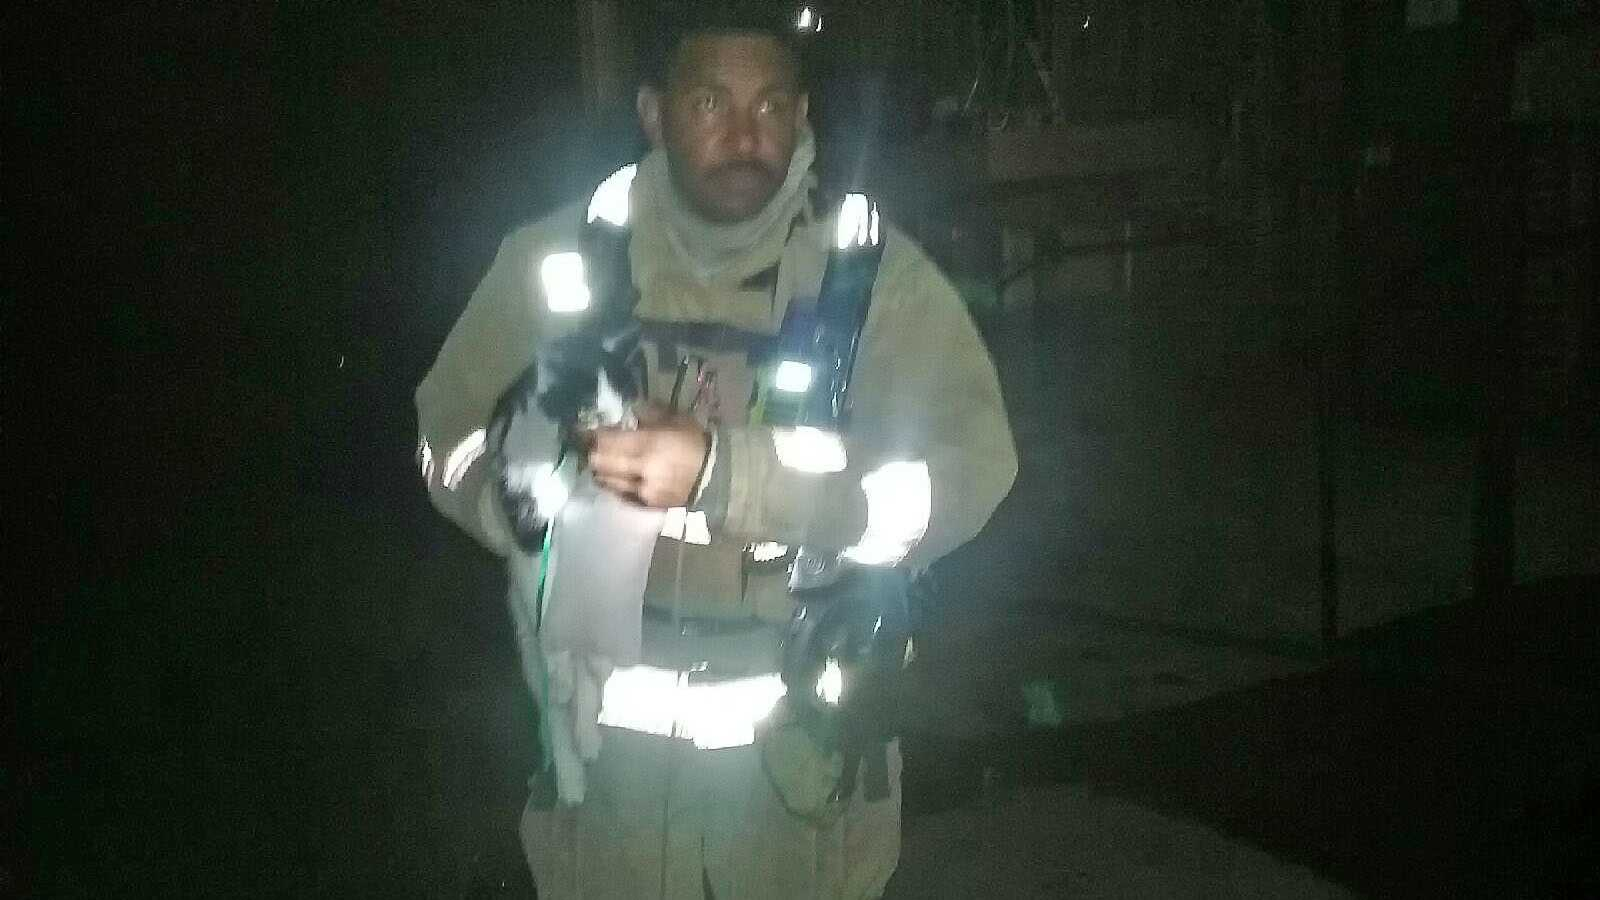 Firefighter carries cat out of apartment building, using oxygen mask to help it breathe.